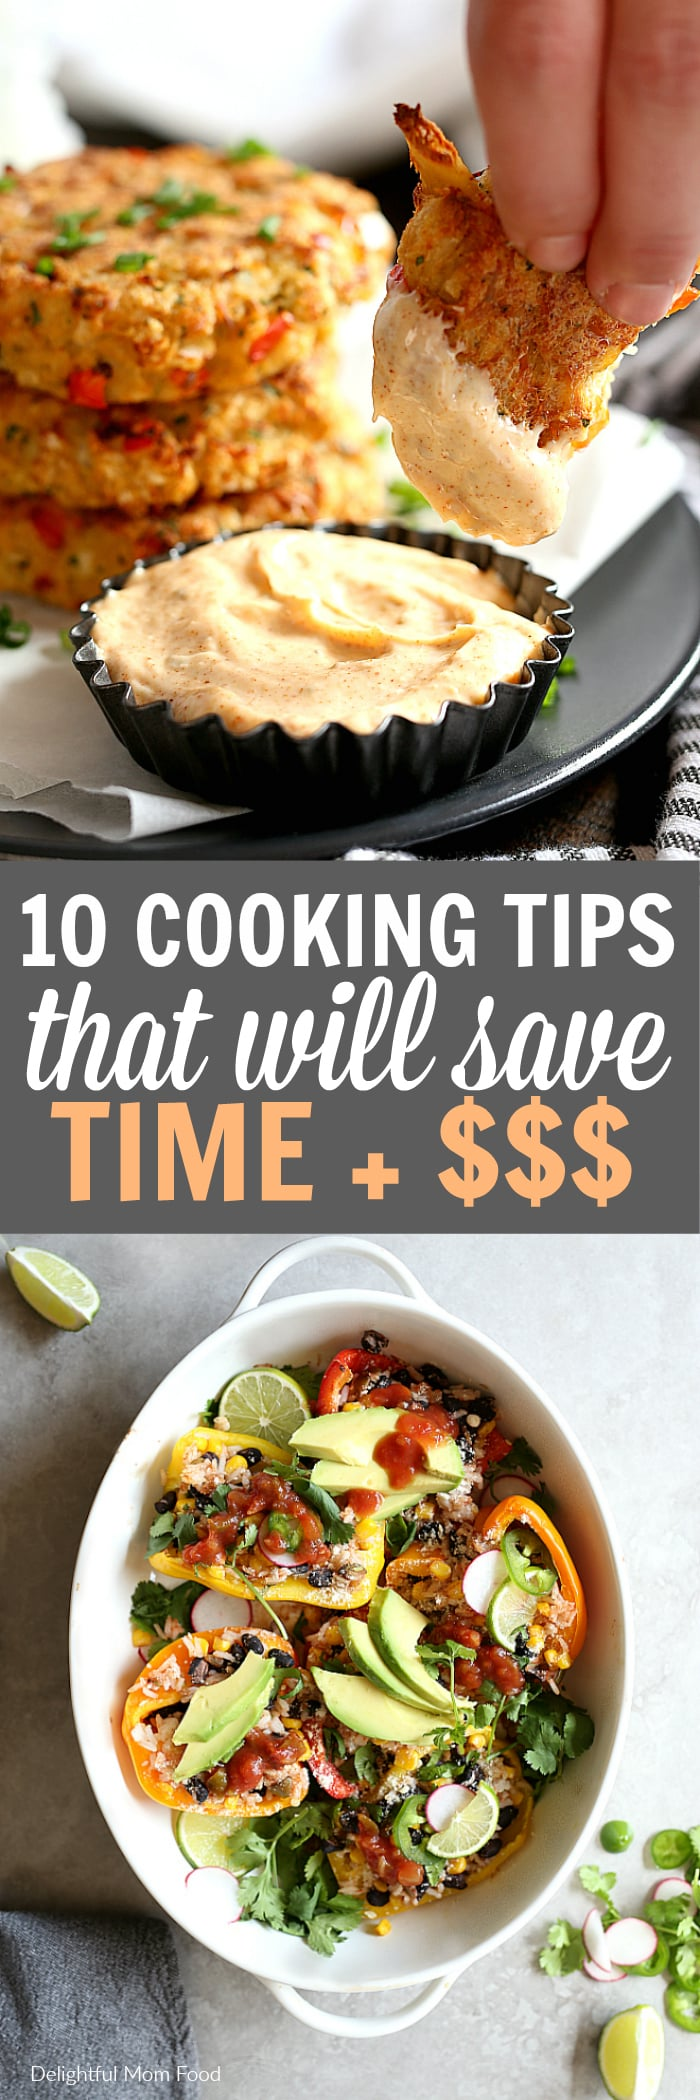 Cooking tips that are tried and true to save you time in the kitchen. These routines will help simplify meals, make your time more efficient and help you cook with confidence. #cooking #tips #save #time #money | Article at delightfulmomfood.com